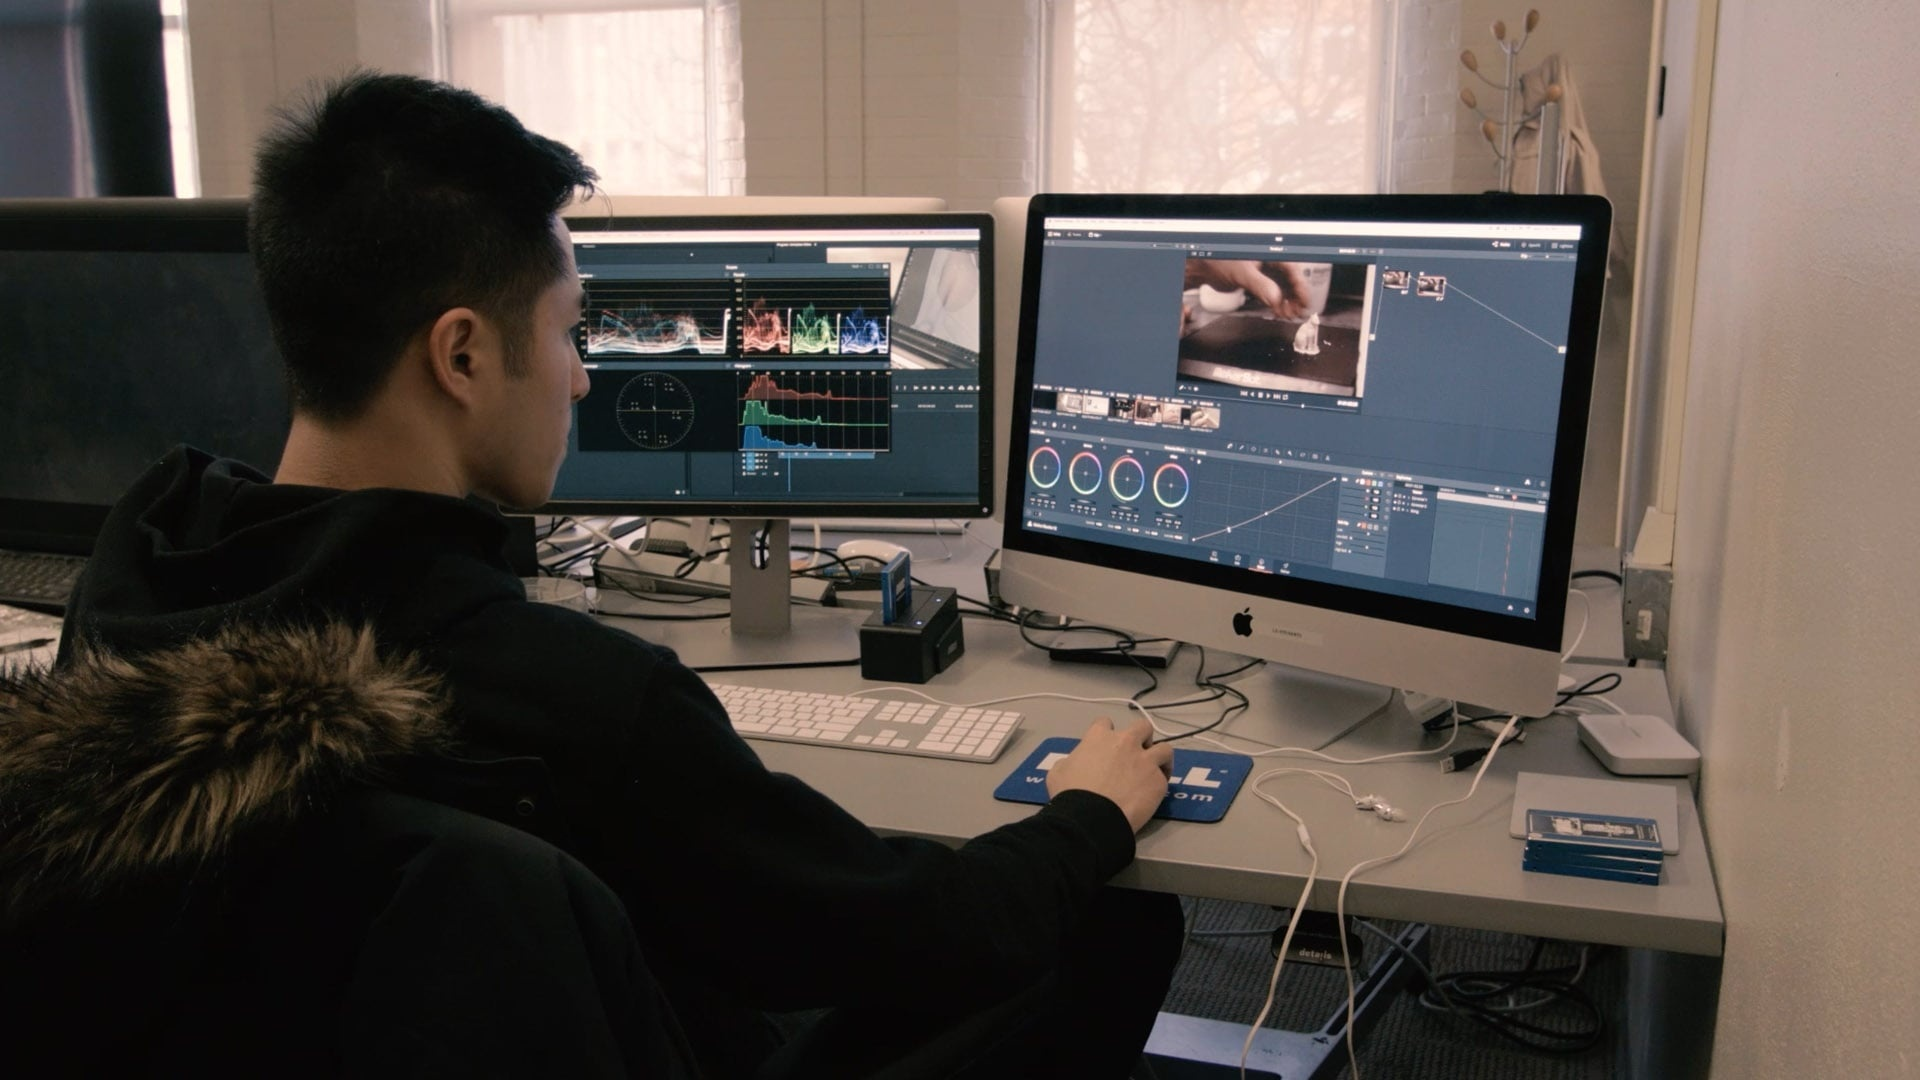 student employee working on computer video editing